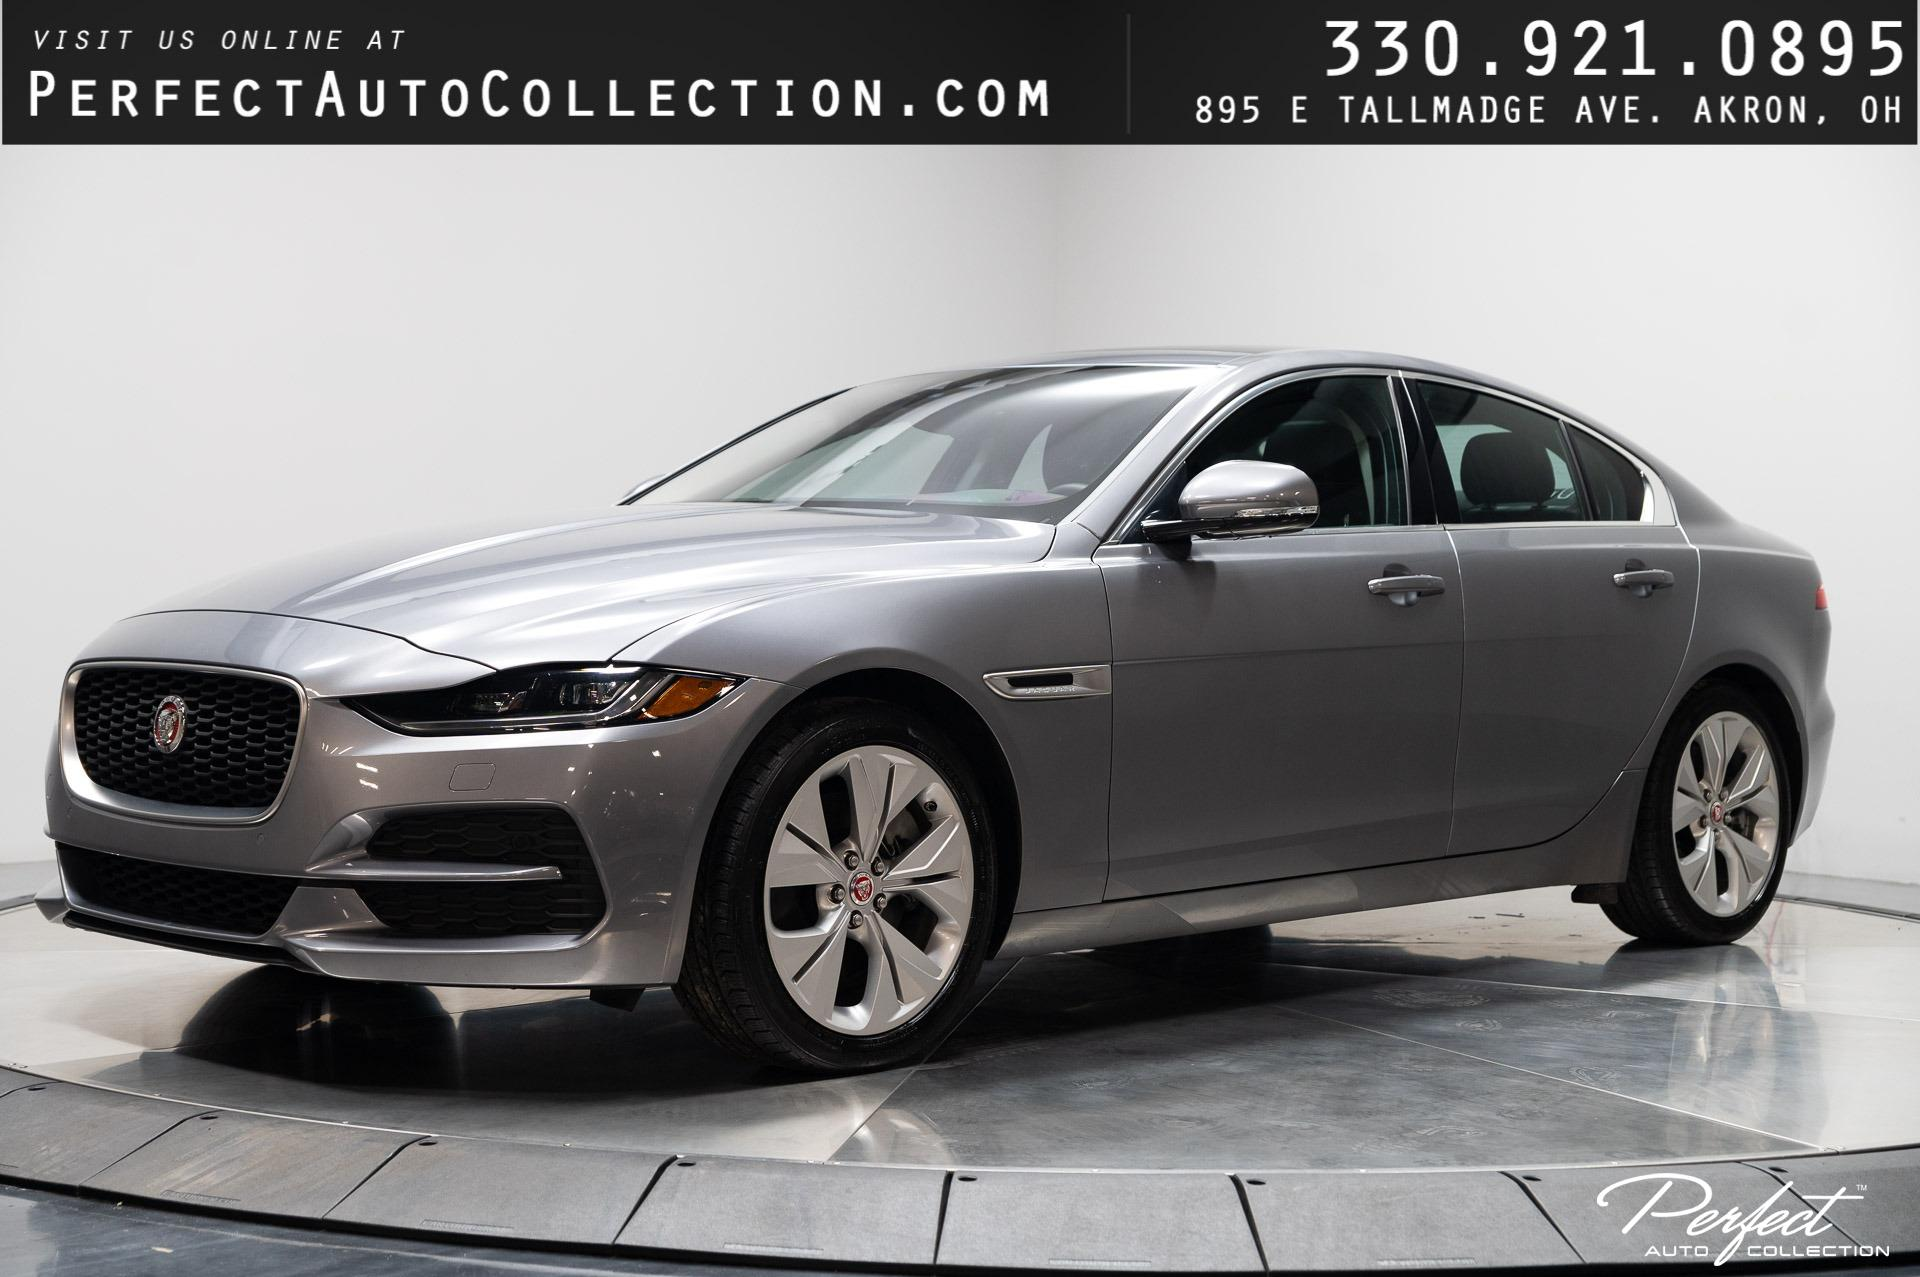 Used 2020 Jaguar XE P250 S for sale $35,495 at Perfect Auto Collection in Akron OH 44310 1